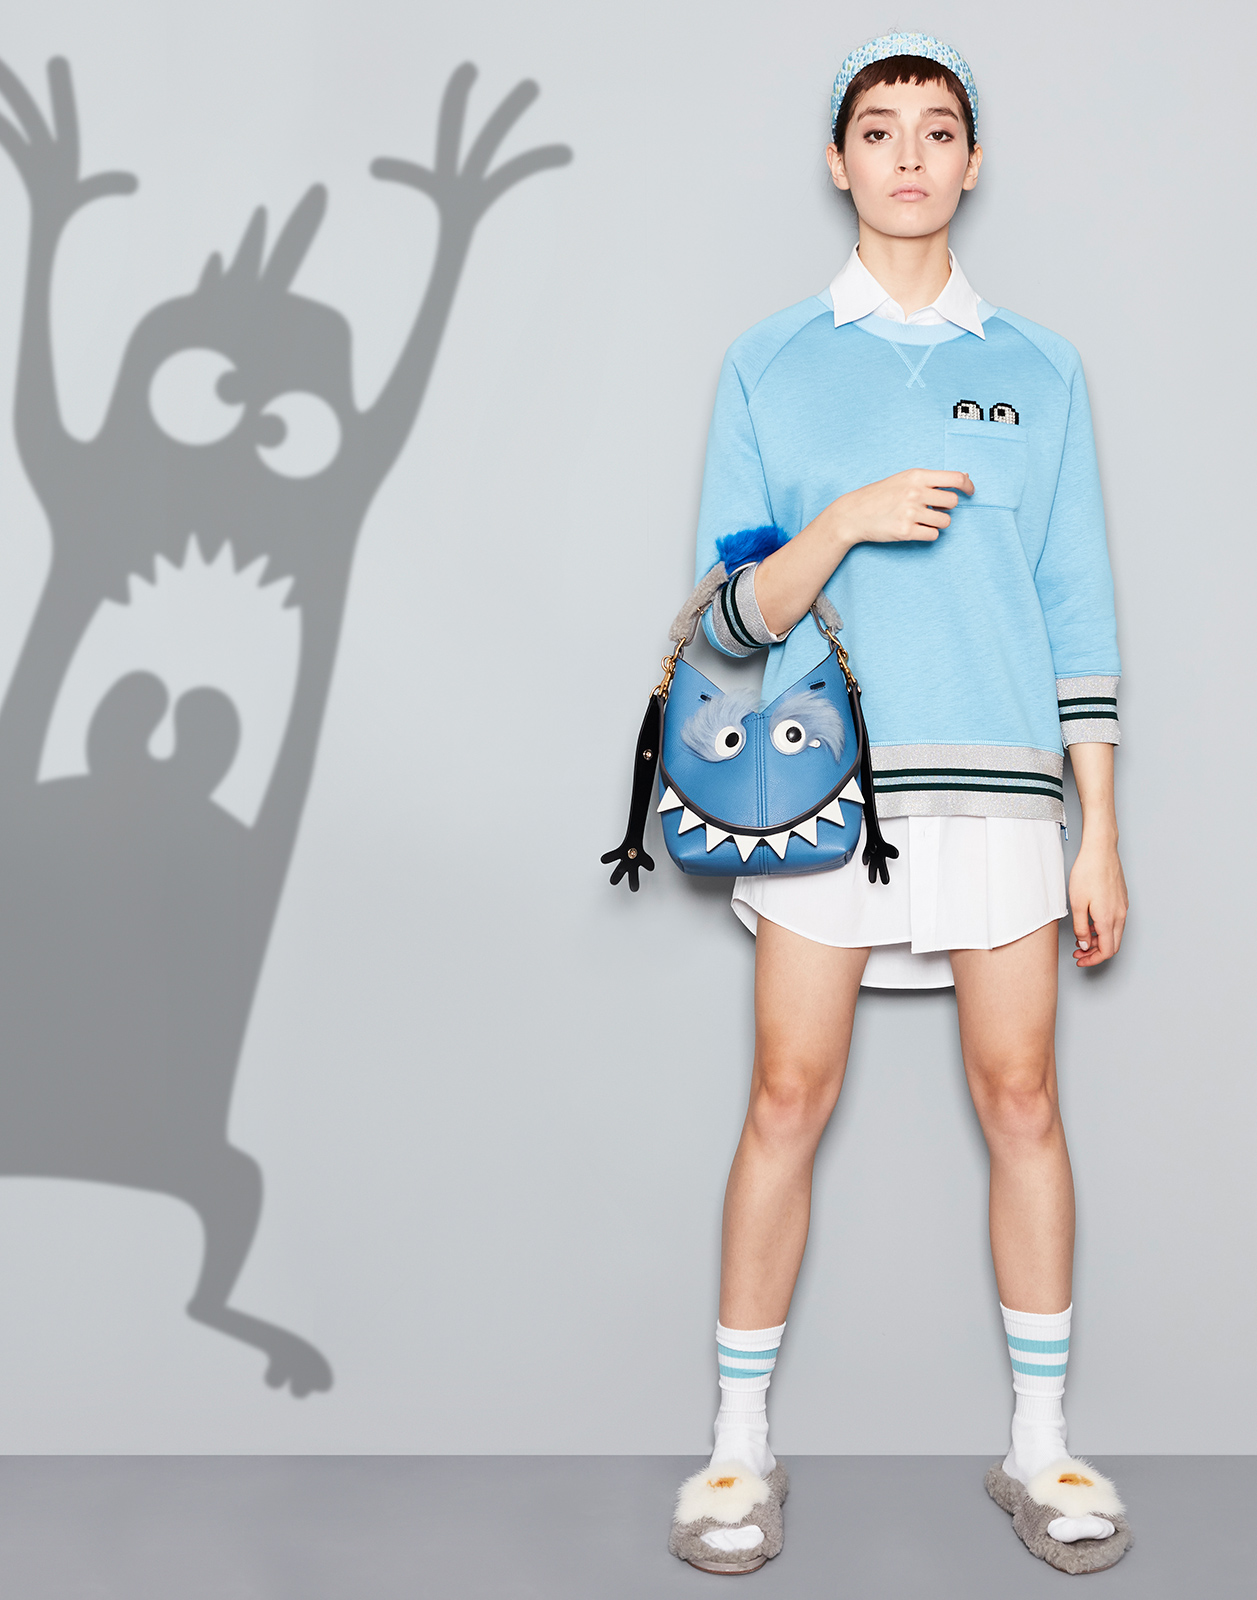 17_10_20_ANYAHINDMARCH_SS18_D2_LOOK_6_4357_extended_Monster_HIRES_crop_no_ret